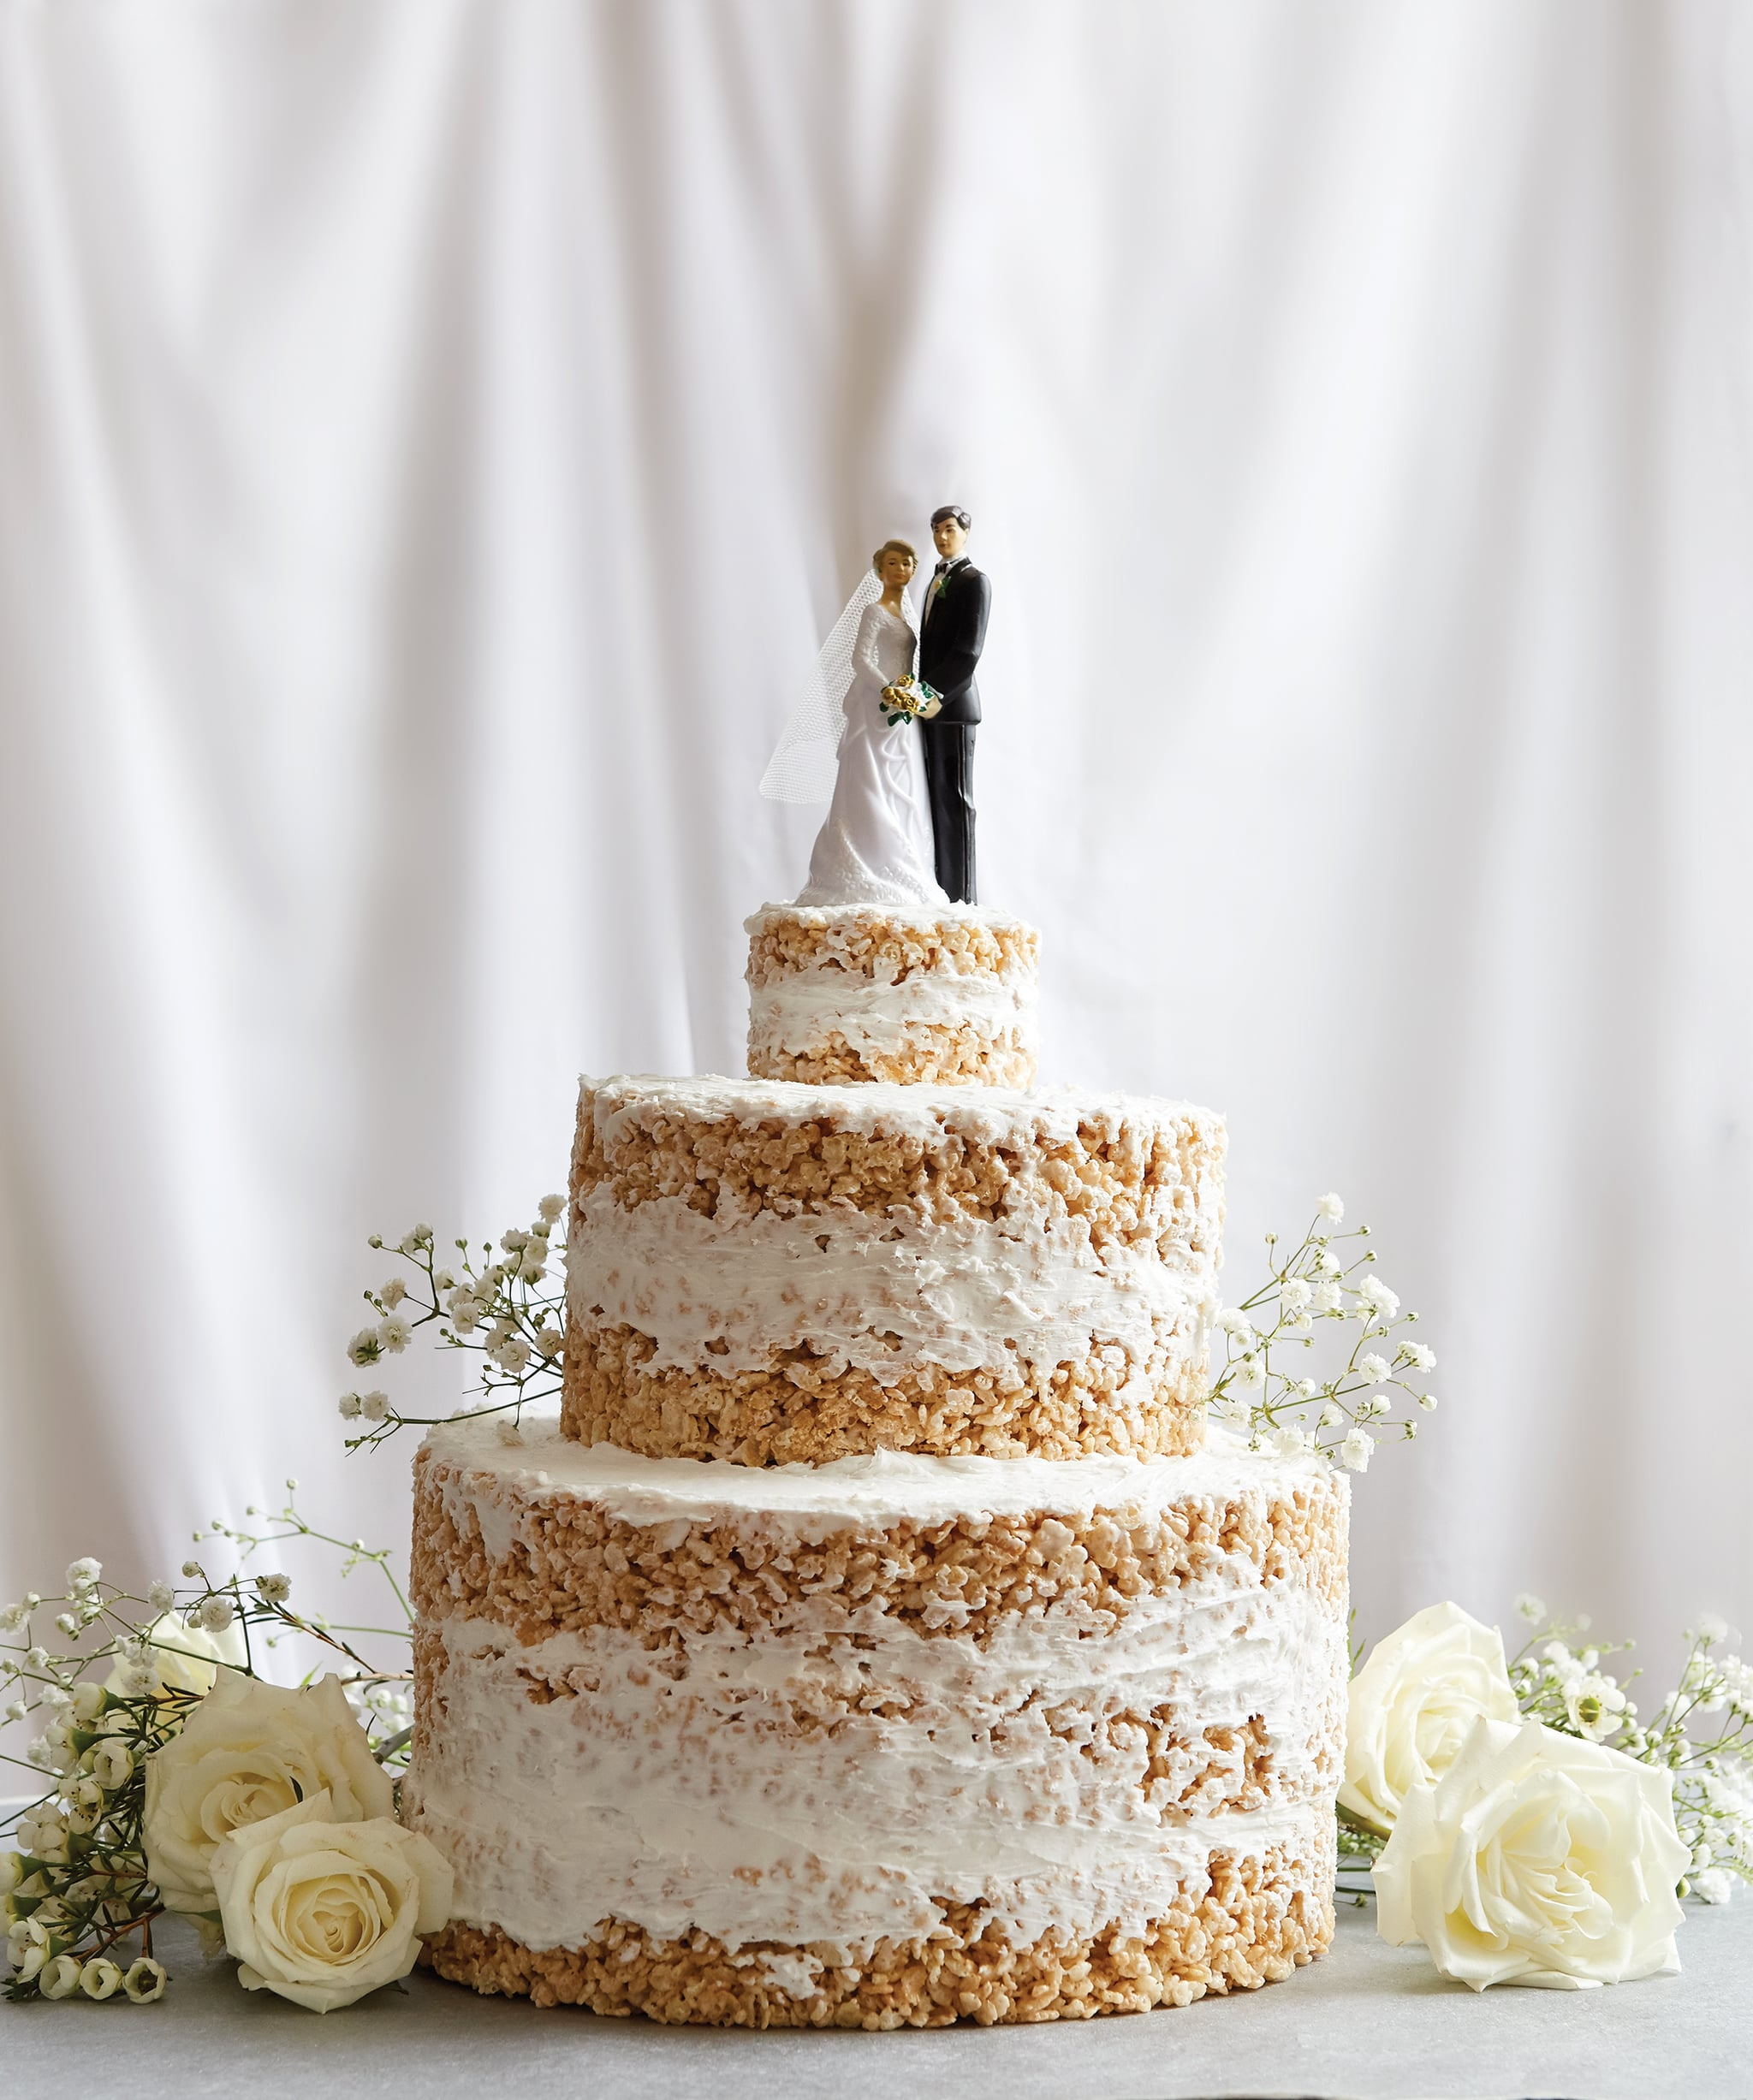 No-Bake Rice Krispies Wedding Cake Recipe